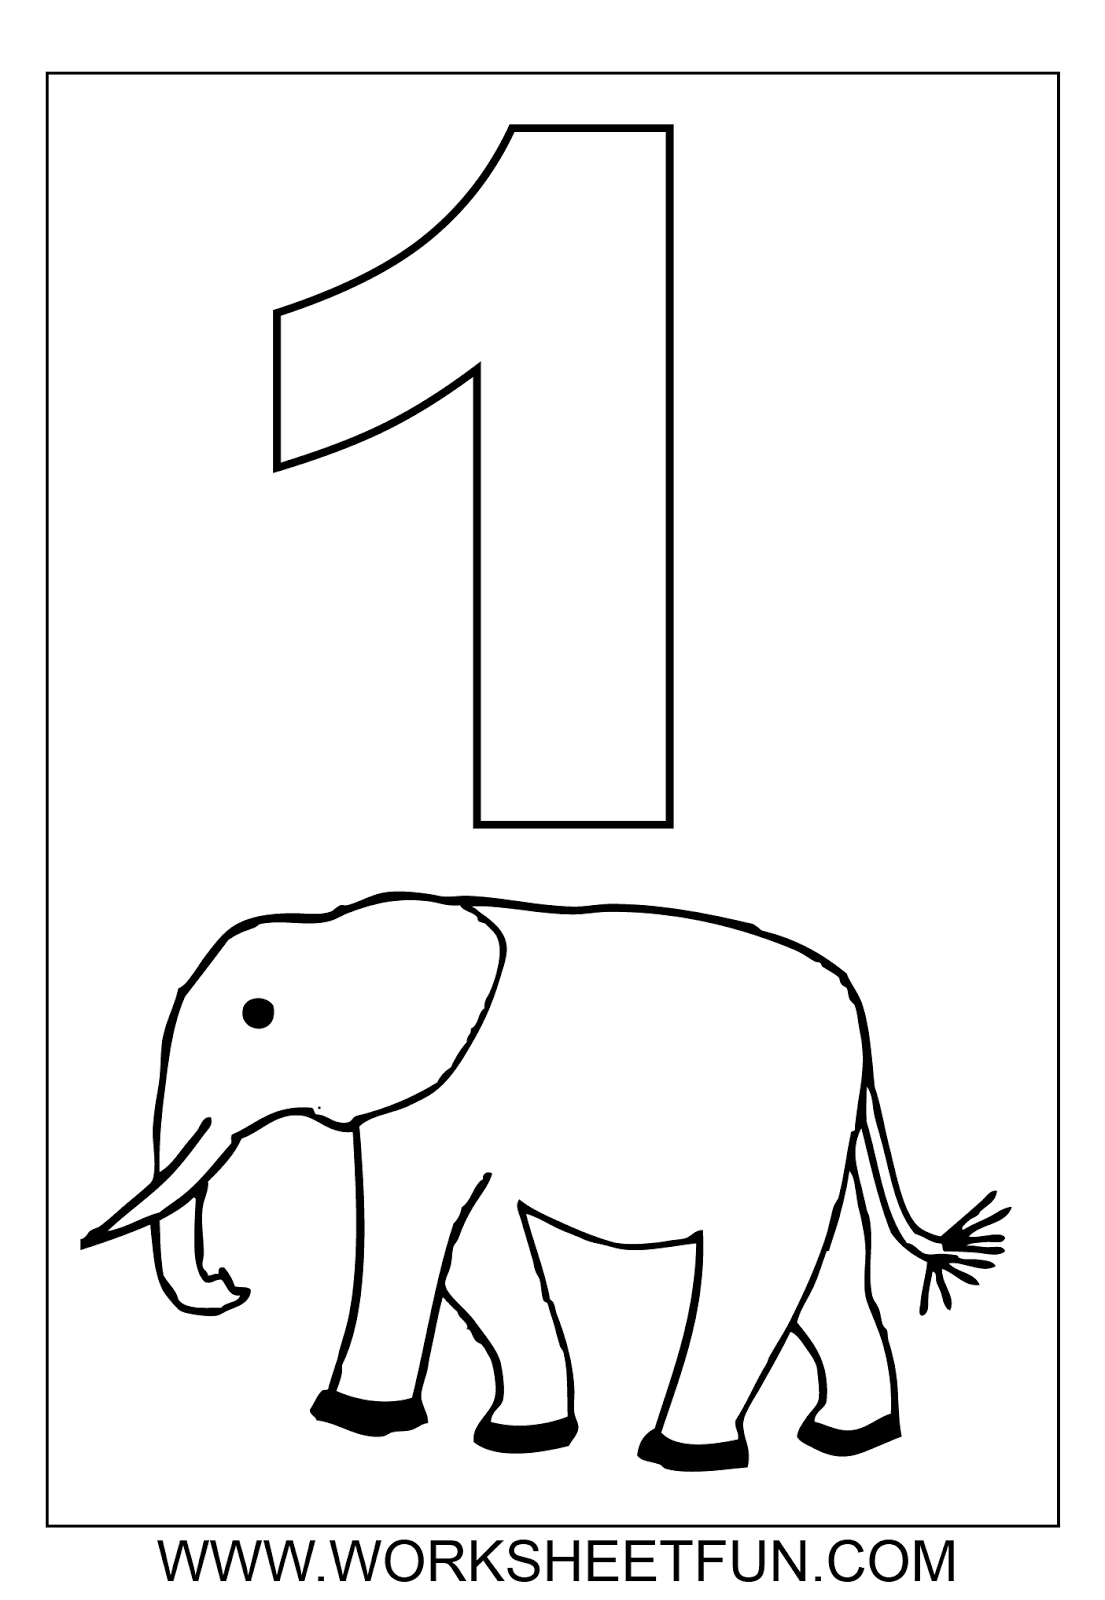 13 Best Images Of Number 14 Worksheets Kindergarten